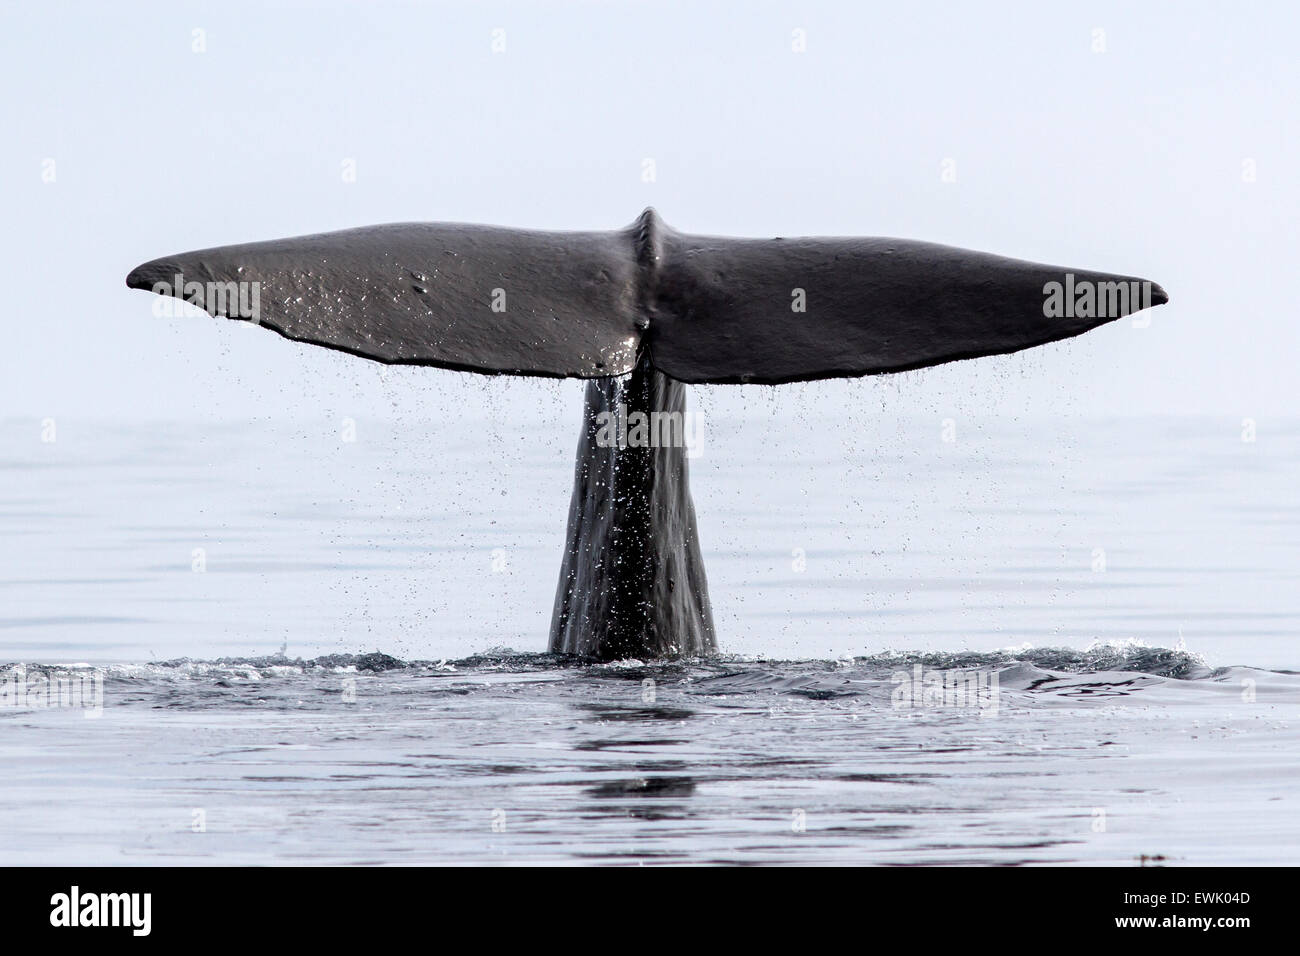 the tail of the sperm whale that dives into the waters of the Pacific Ocean - Stock Image